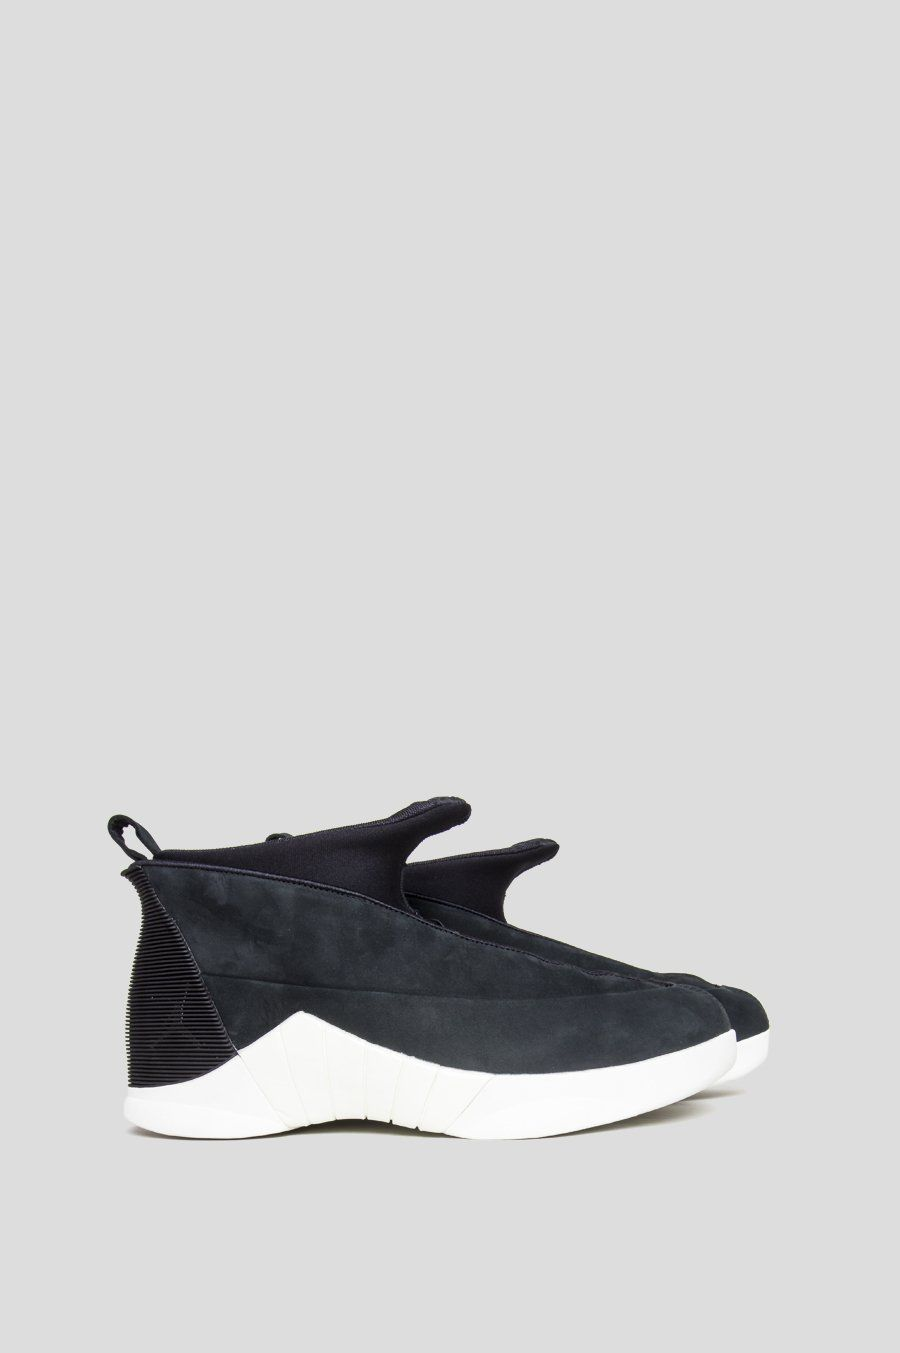 7bcaa064e6e NIKE X PUBLIC SCHOOL NEW YORK AIR JORDAN 15 RETRO BLACK | Products ...